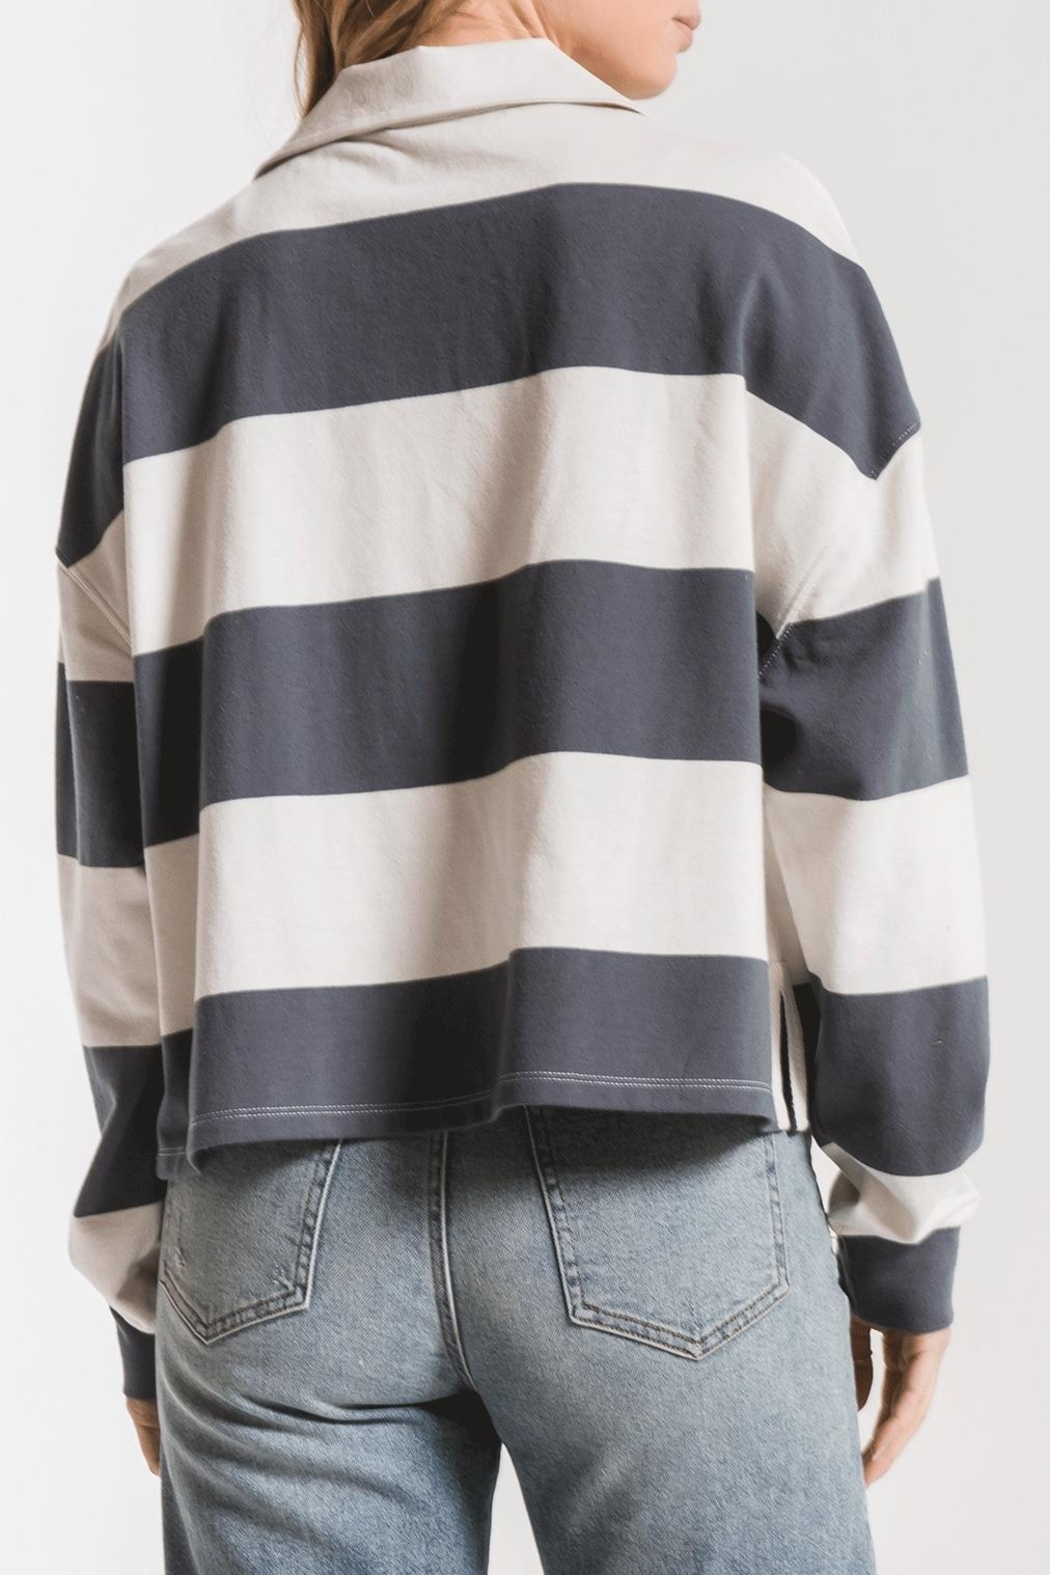 z supply Rugby Stripe Shirt - Front Full Image